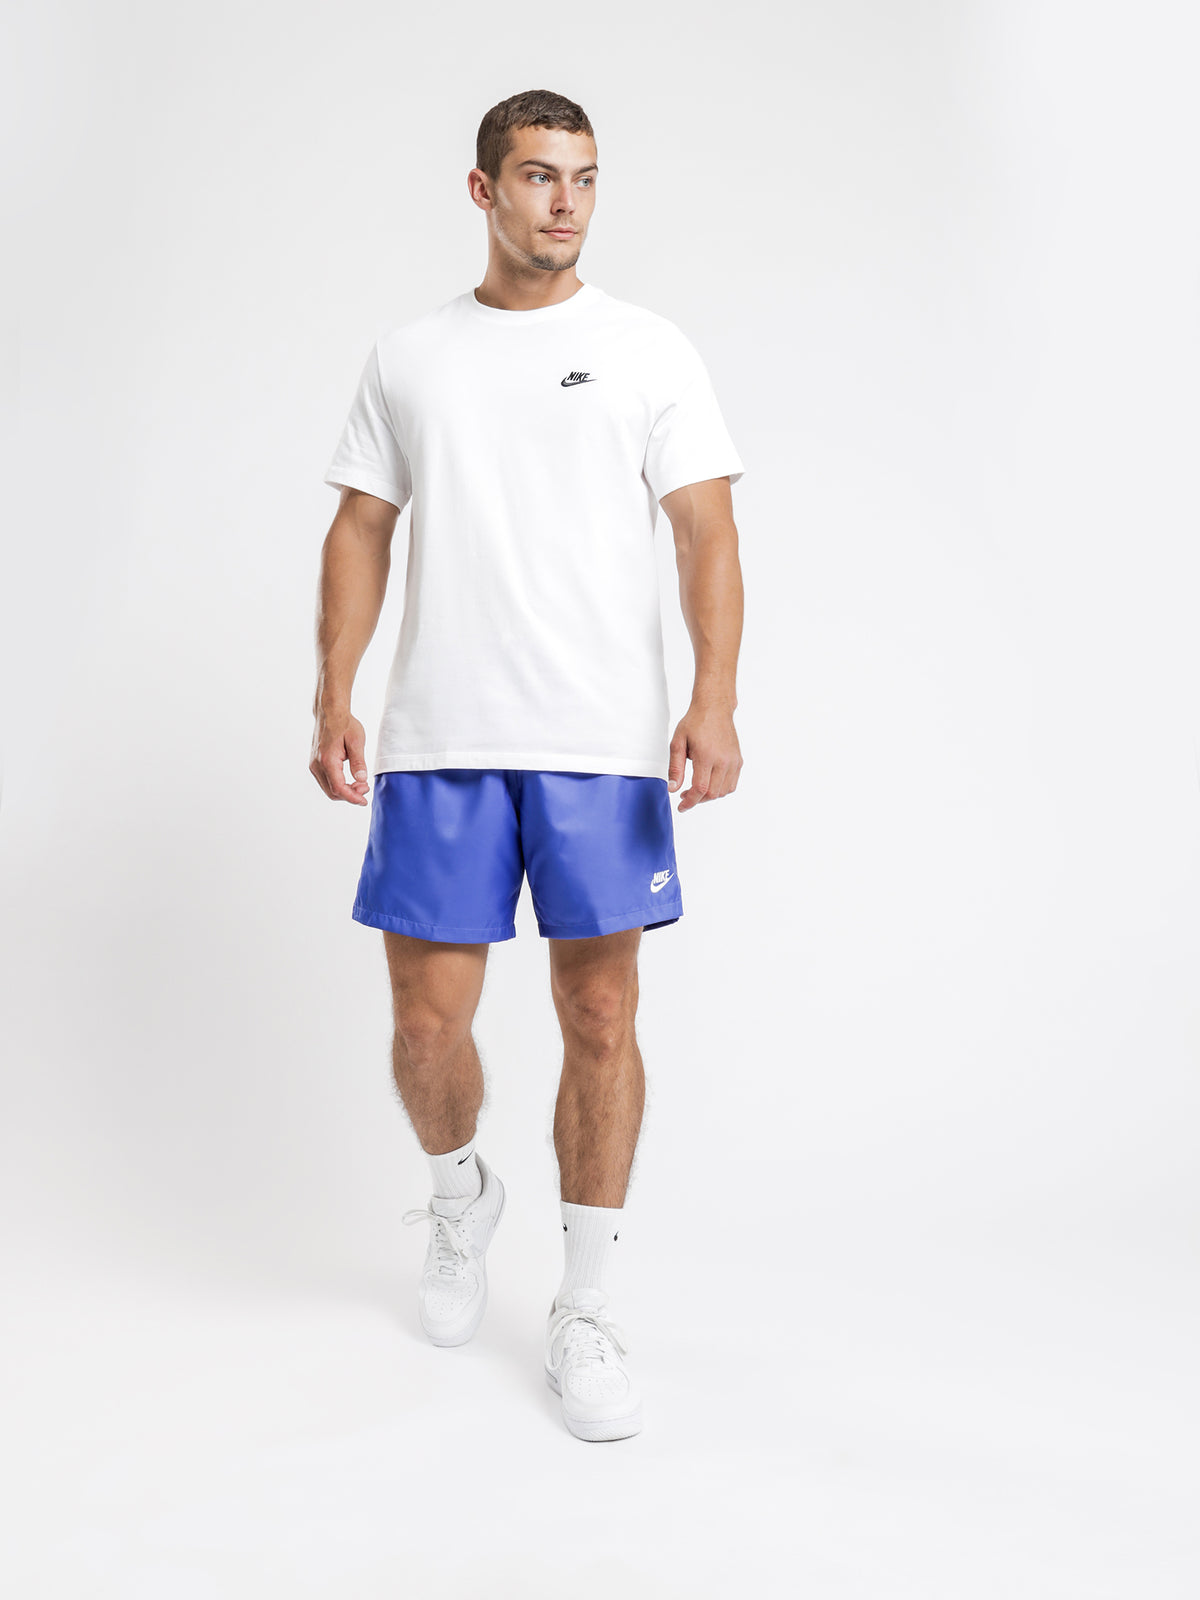 Sportswear Men's Woven Shorts in Blue